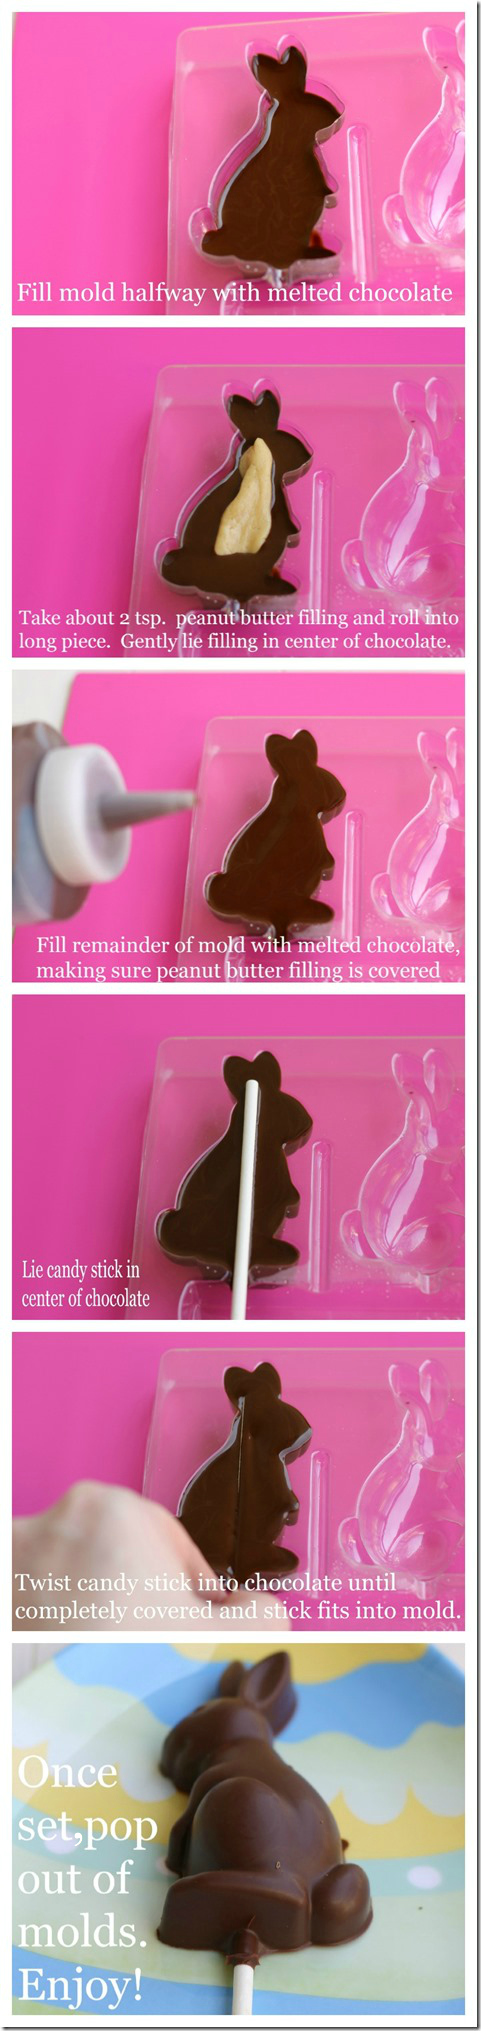 How-to-Make-a-PB-Filled-Chocolate-Bunny-Pops_thumb